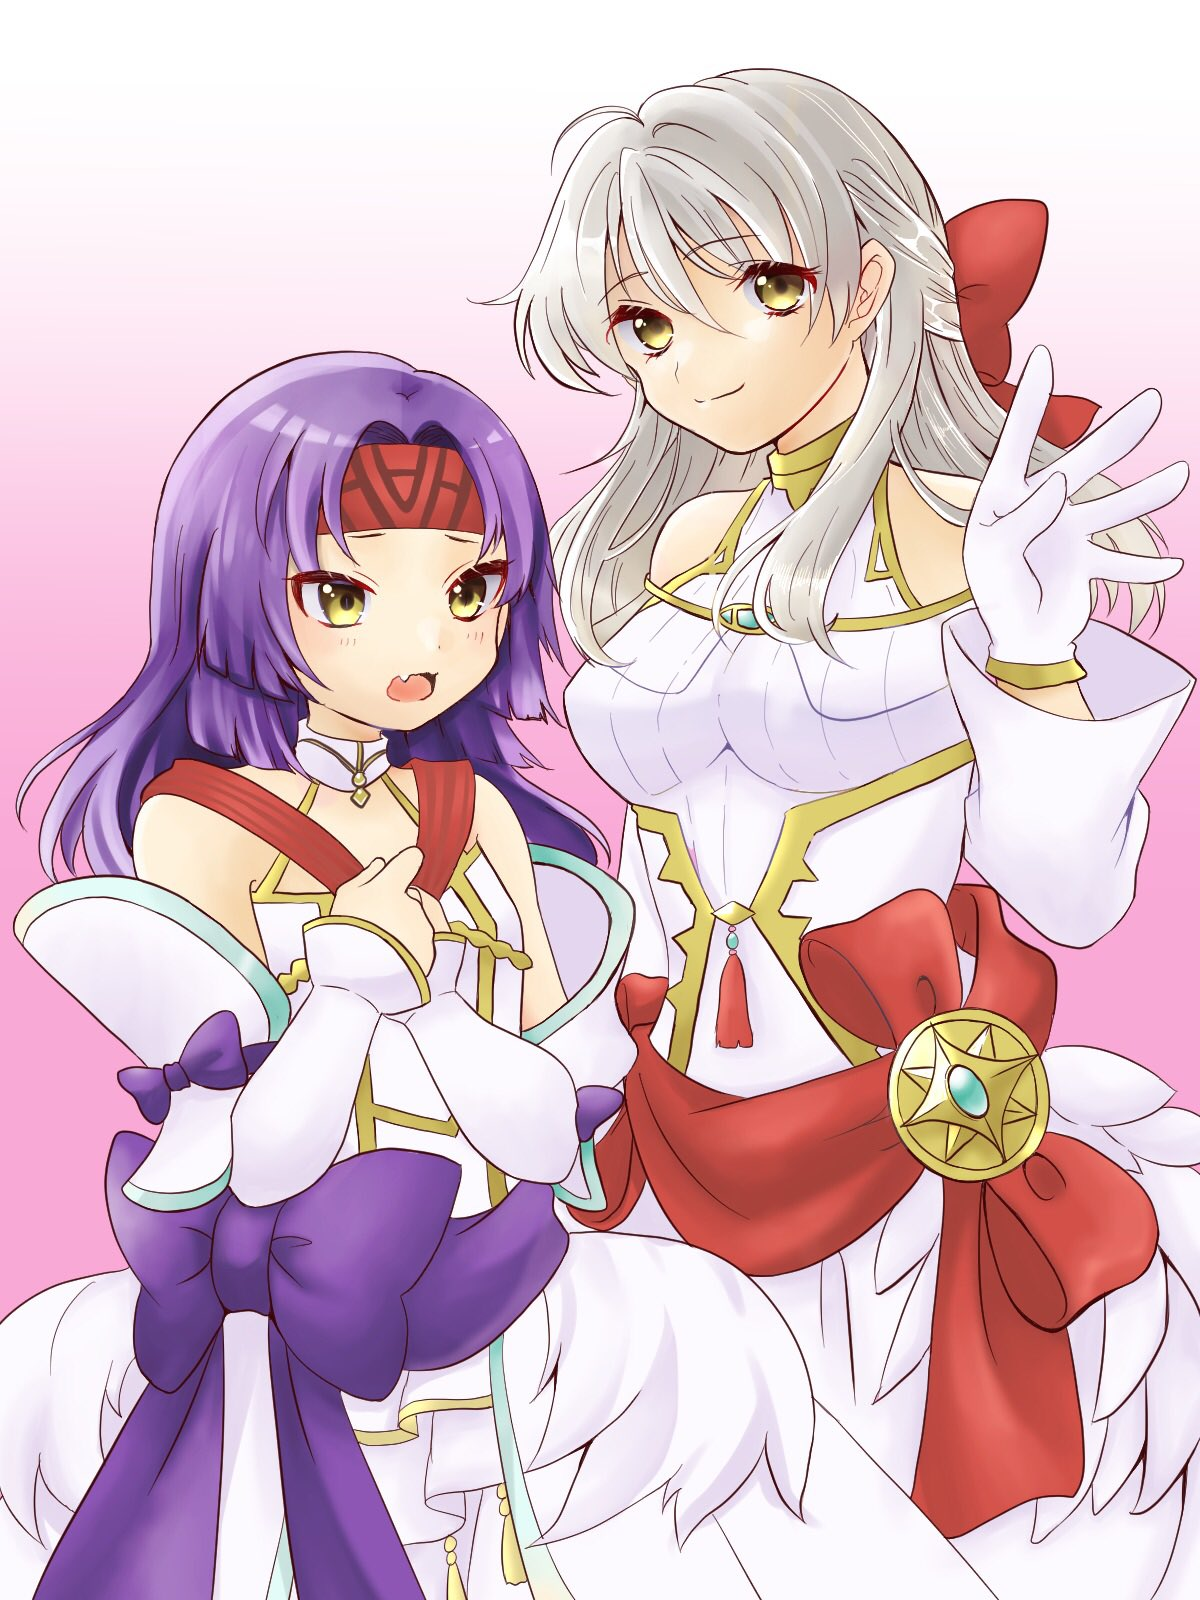 2girls alternate_costume bare_shoulders blue_scarf bow cowboy_shot detached_sleeves dress fang fire_emblem fire_emblem:_path_of_radiance fire_emblem:_radiant_dawn frills gau_fe gloves gradient gradient_background hair_bow half_updo headband highres long_hair long_sleeves looking_at_viewer micaiah_(fire_emblem) multiple_girls official_alternate_costume open_mouth pink_background purple_hair sanaki_kirsch_altina scarf silver_hair smile turtleneck wedding_dress white_background white_dress white_gloves yellow_eyes